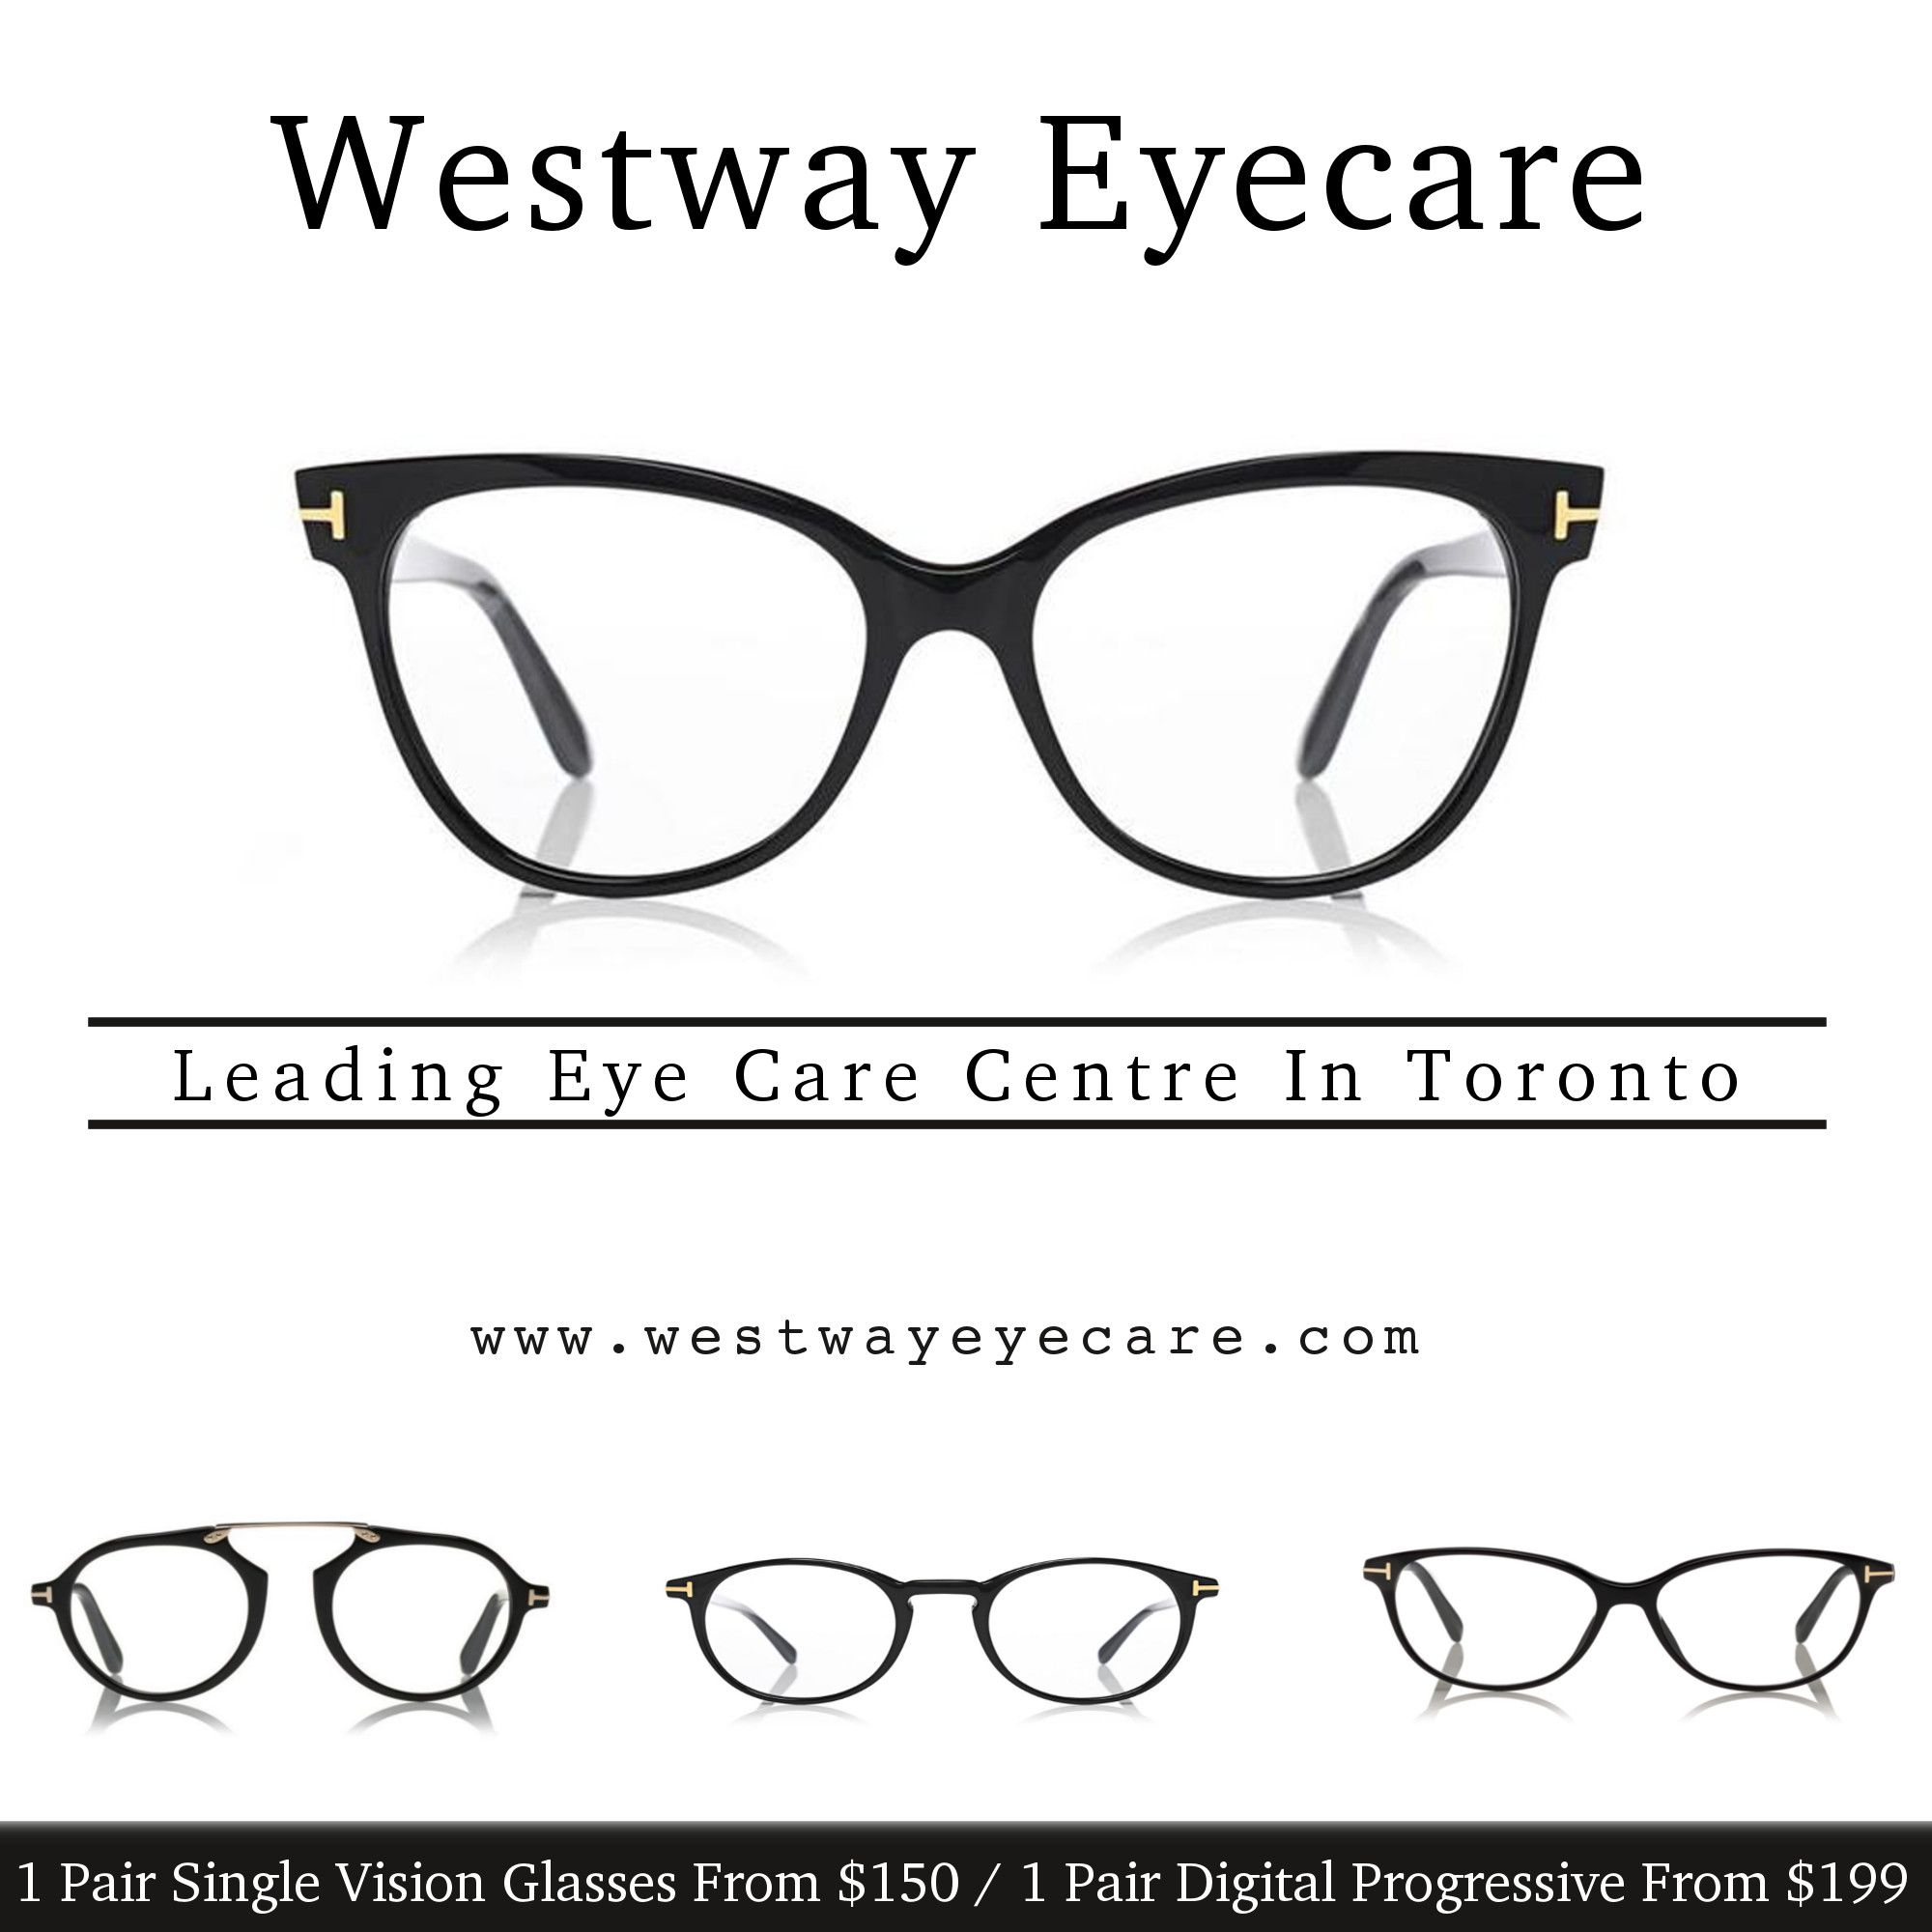 Westway Eyecare is your local & #Toronto leading #eye #care centre ...